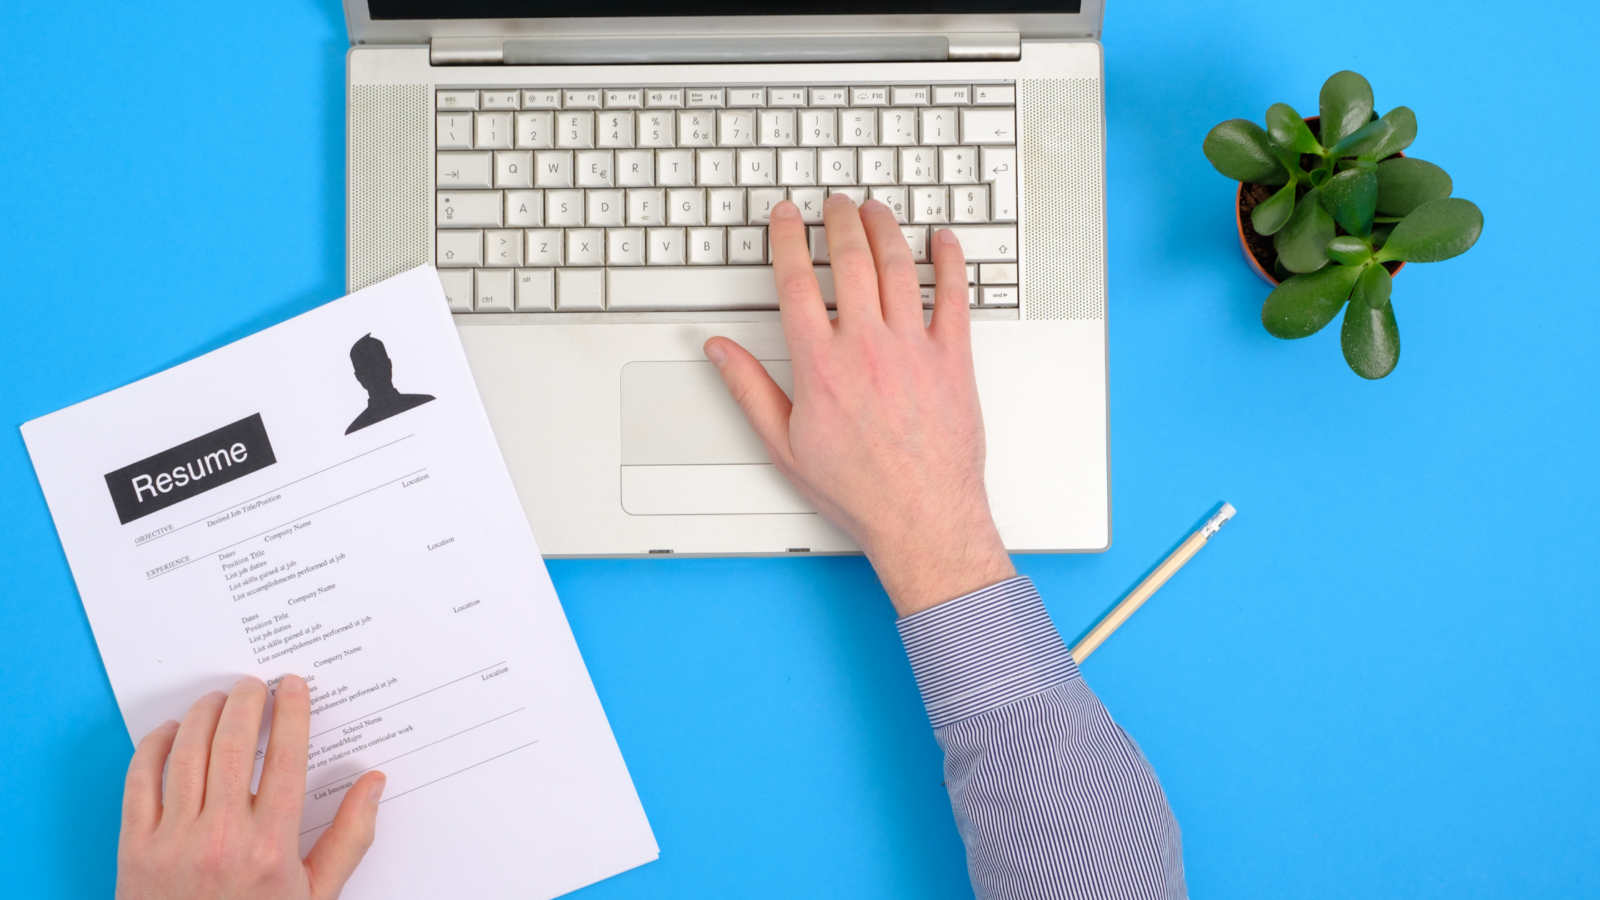 Streamline your job application as much as possible to increase conversion.